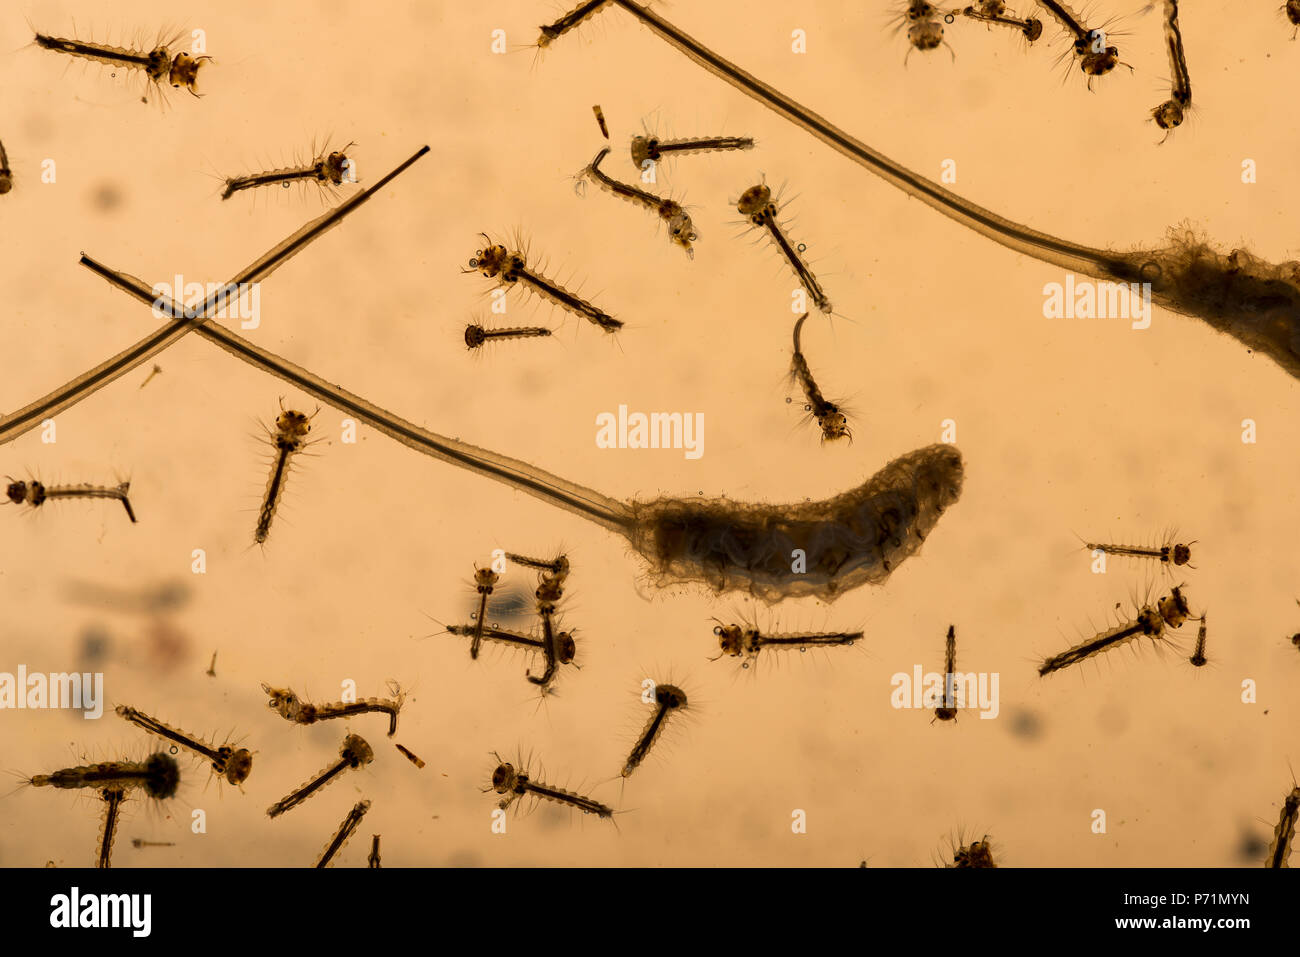 Mosquito Culicidae pupae and larvae along with drone fly maggots wriggling in grimy nutrient rich nitrogen pond water of varying stages of development - Stock Image